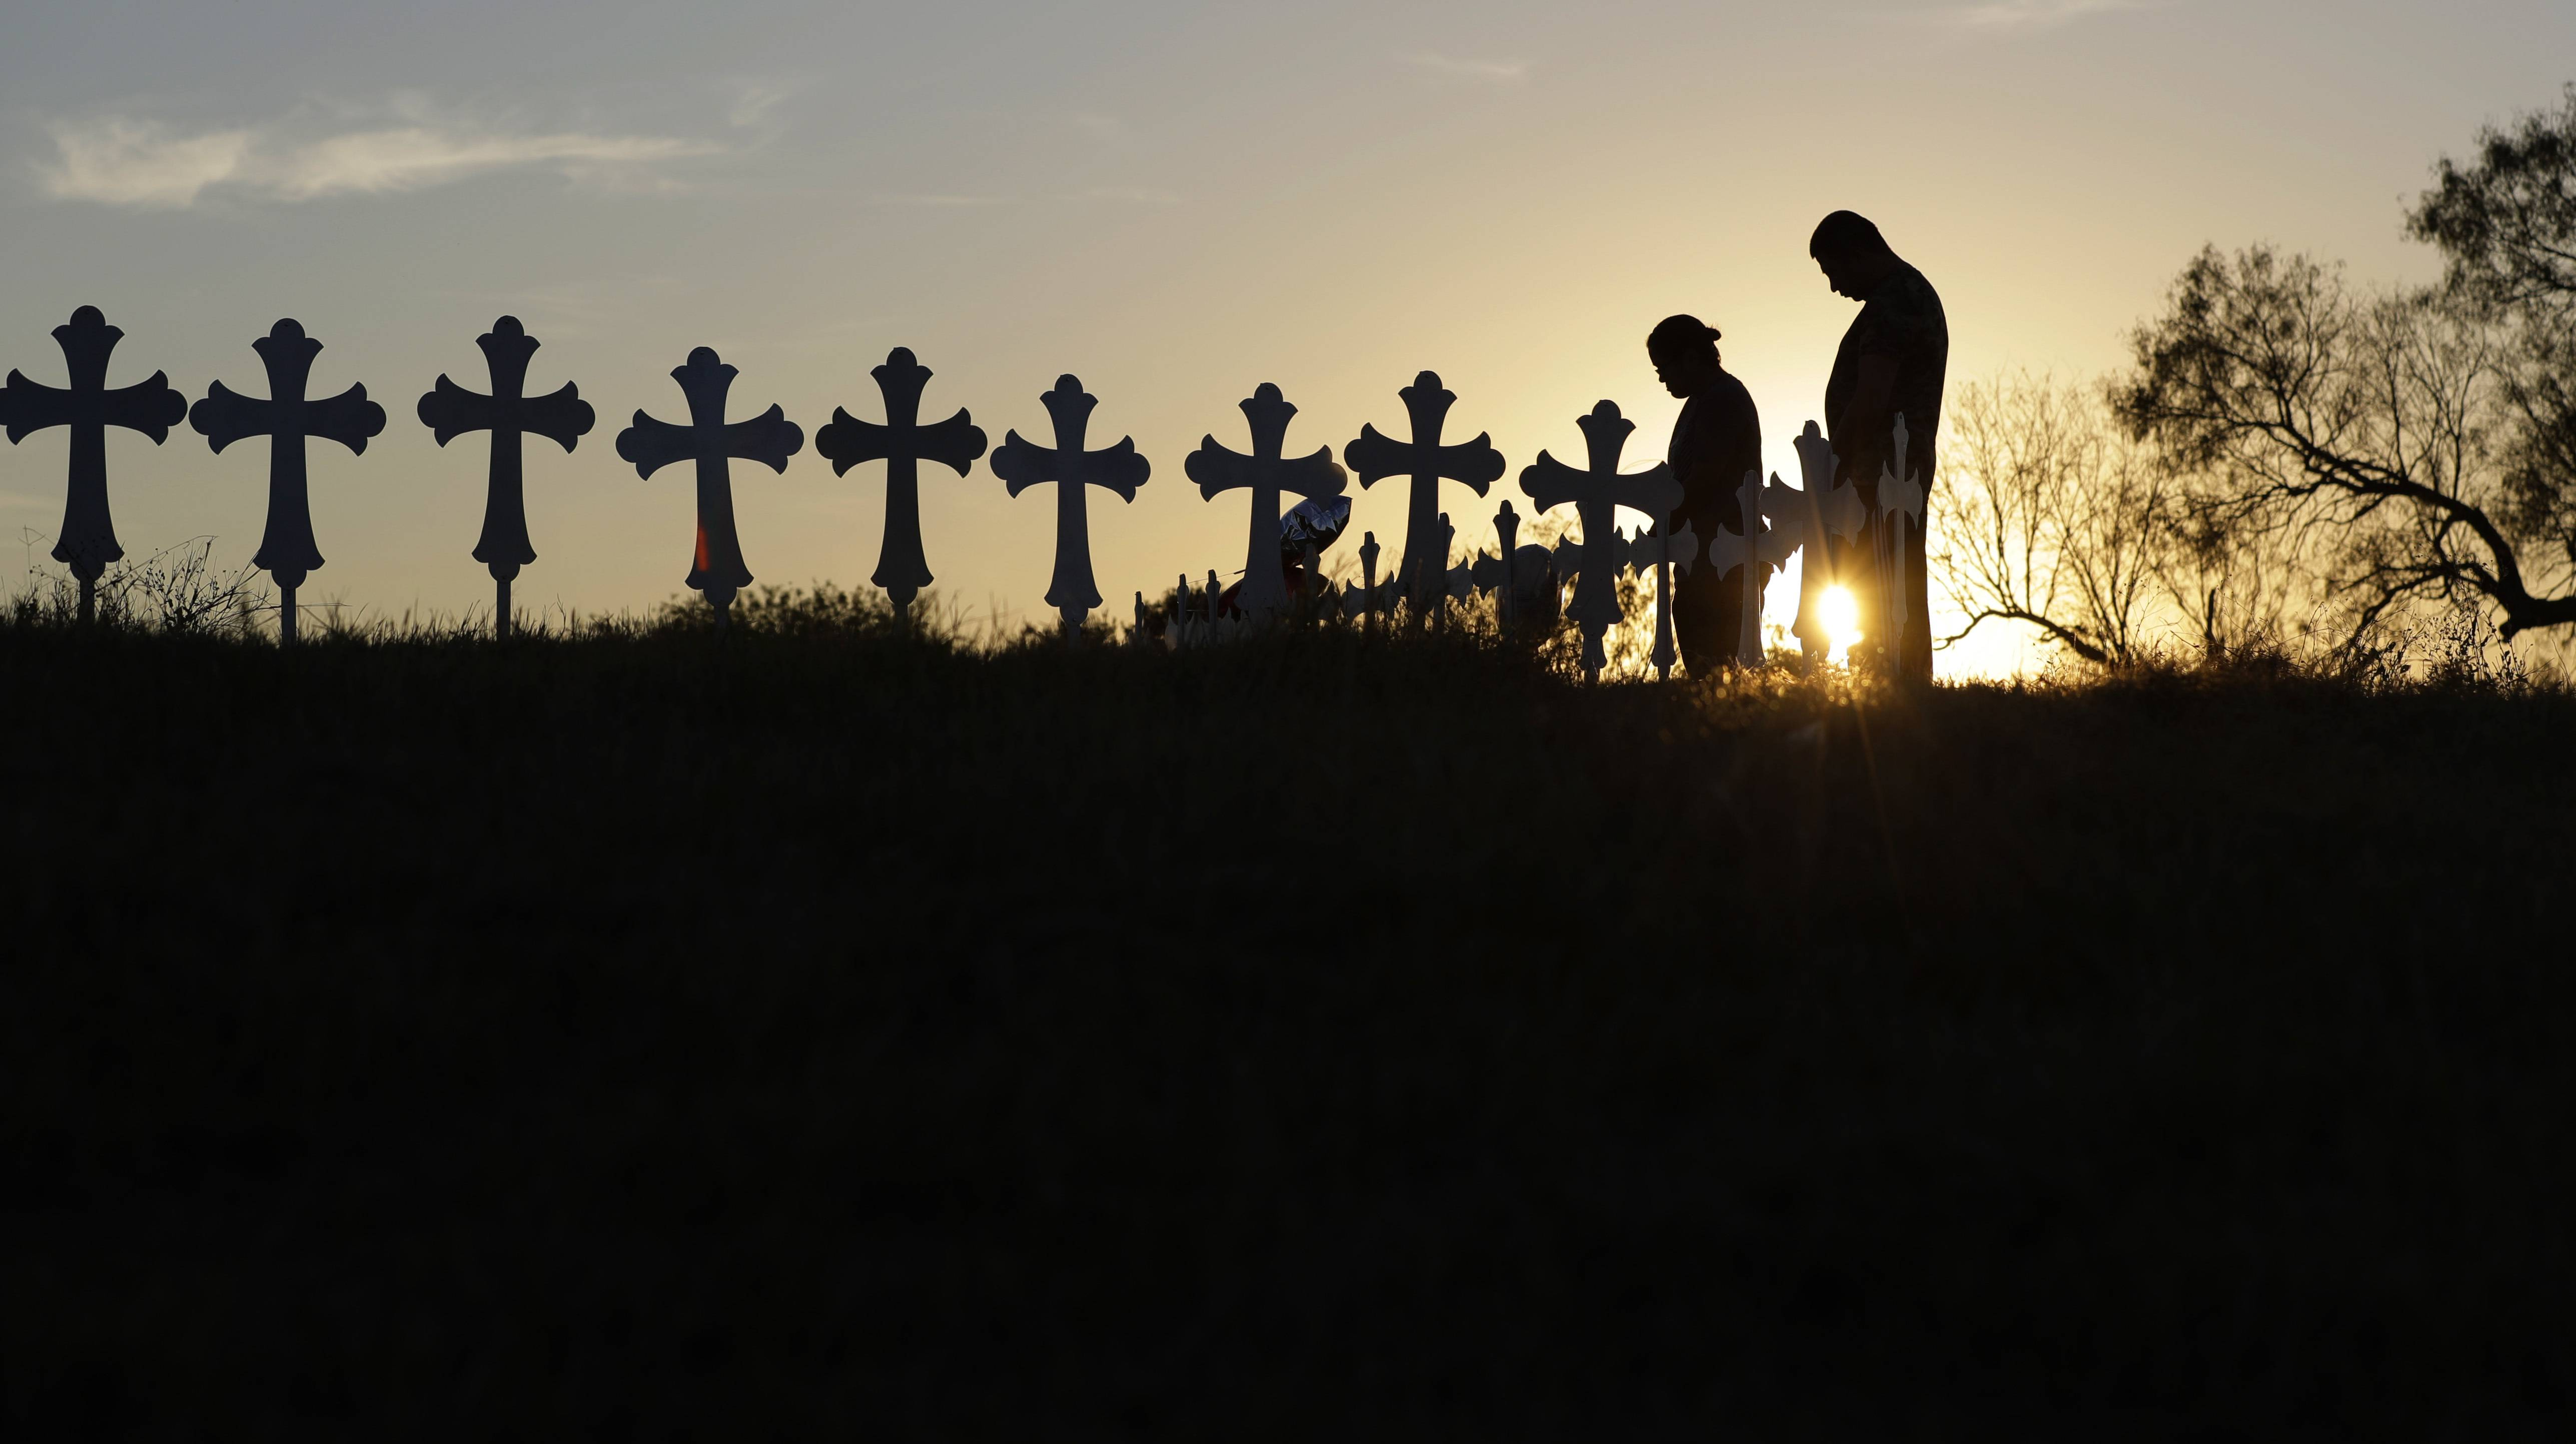 Kenneth and Irene Hernandez pay their respects Monday as they visit a makeshift memorial with crosses placed near the scene of a shooting at the First Baptist Church of Sutherland Springs in Sutherland Springs, Texas. A man opened fire inside the church in the small South Texas community on Sunday, killing and wounding many.